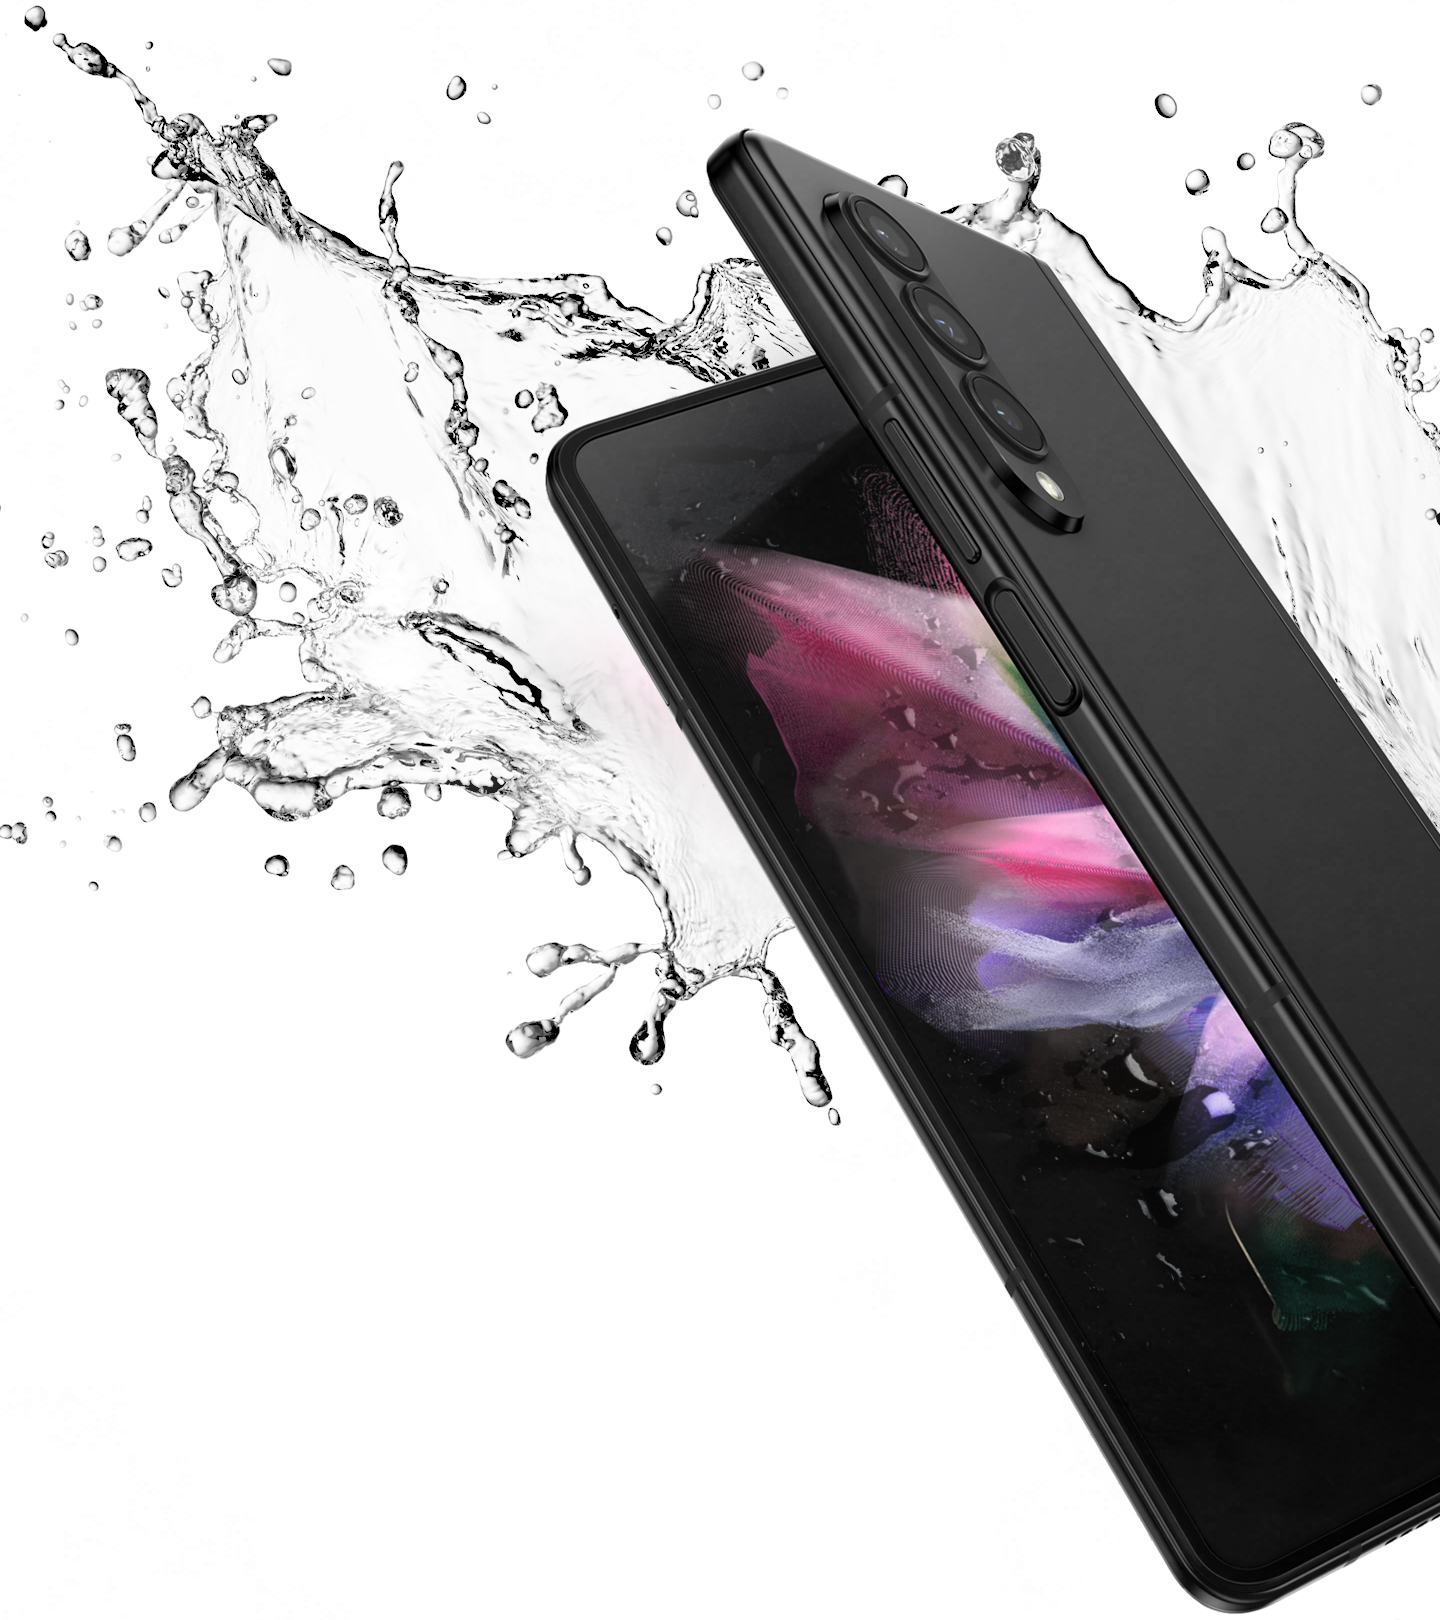 Galaxy Z Fold3 5G partially unfolded and seen from the open side, with a colorful wallpaper on the Main Screen. It is surrounded by a splash of water.